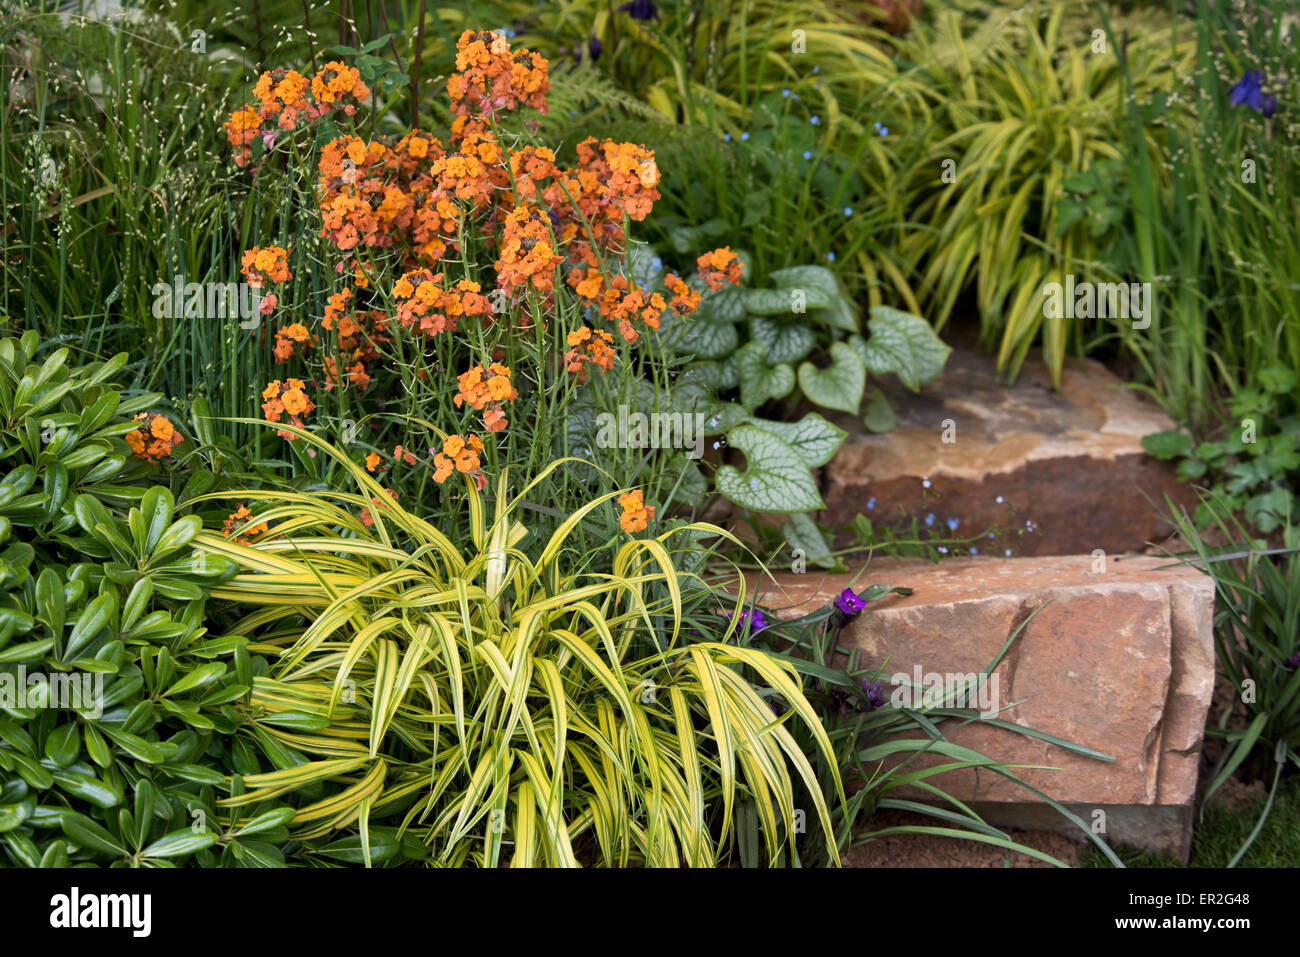 Erysimum 'Apricot Twist' growing in a section of The Sentebale-Hope in Vulnerability Garden at The RHS Chelsea - Stock Image